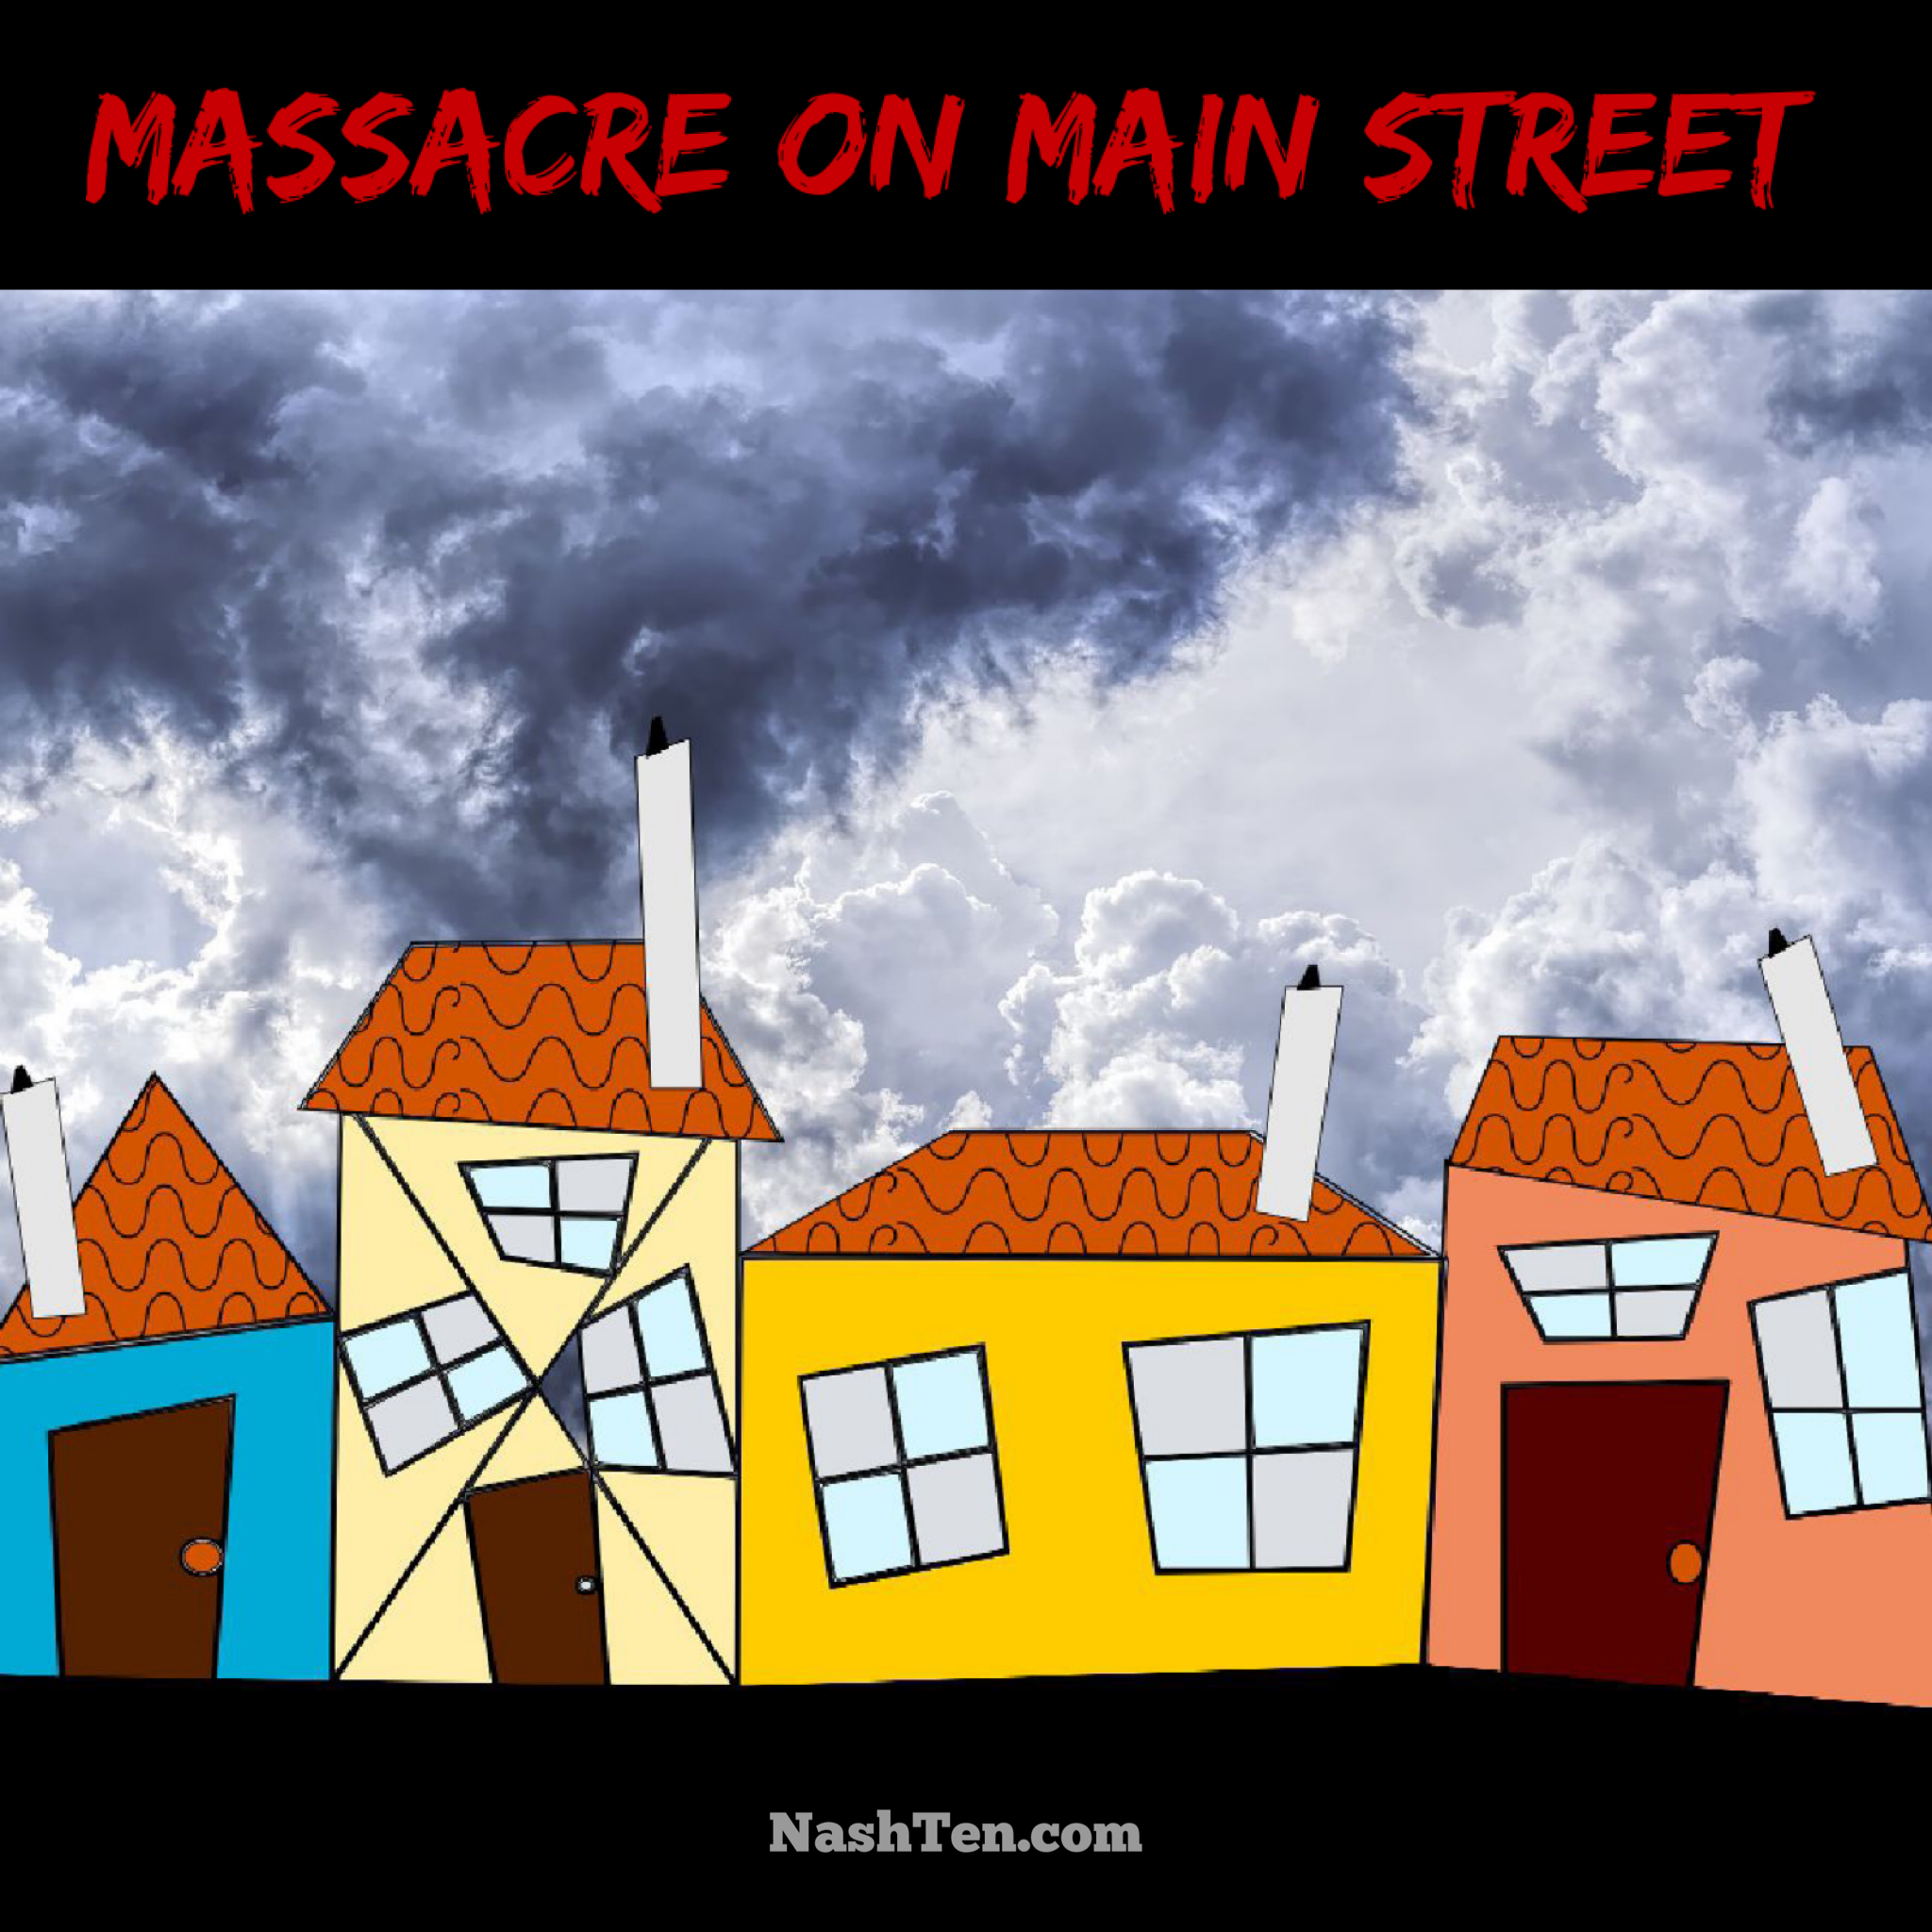 How to Avoid a Massacre on Main Street